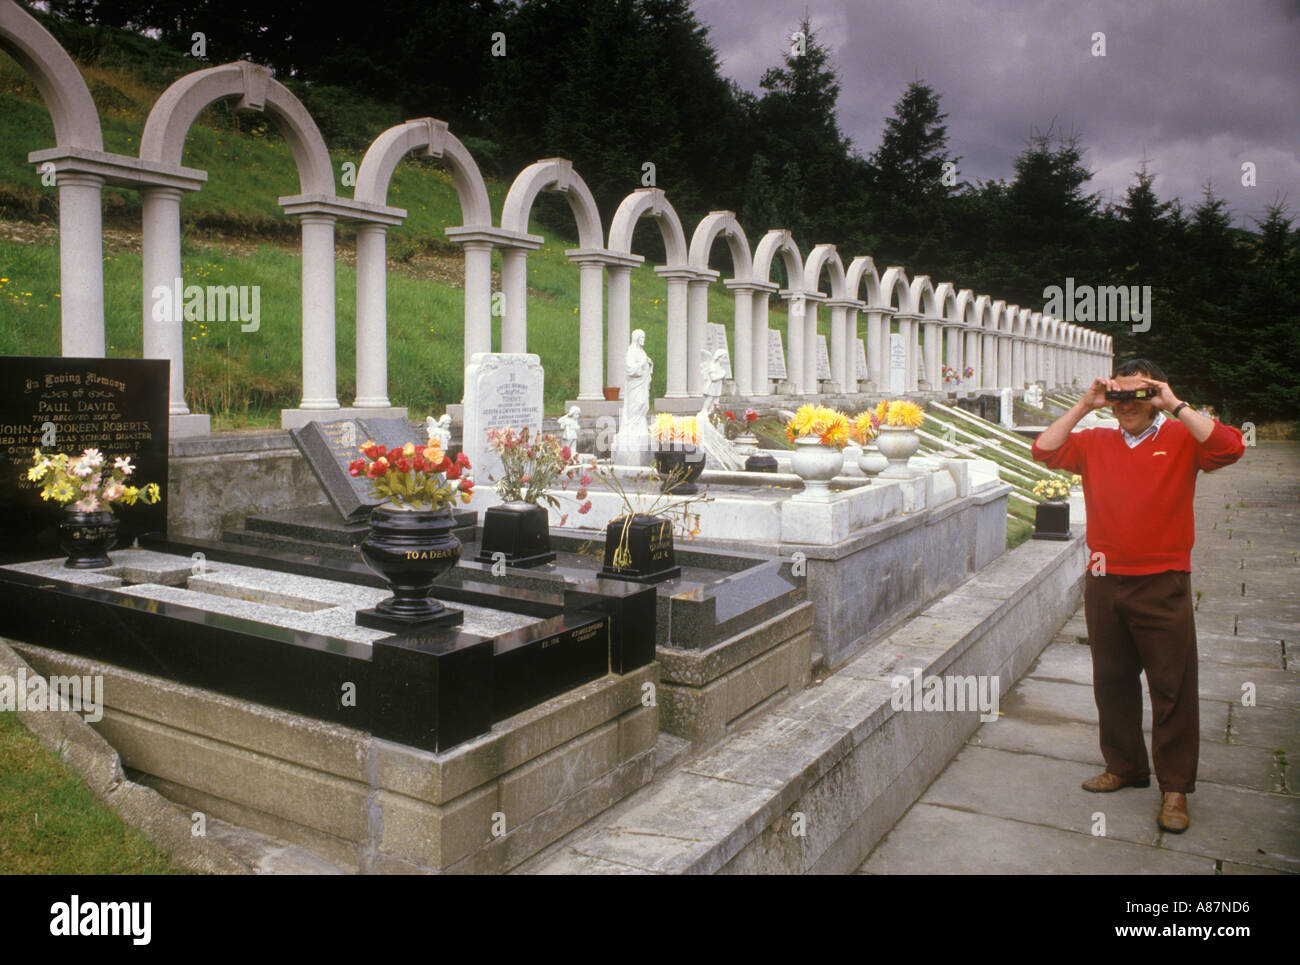 Aberfan Mid Glamorgan A tourist takes a photograph of the memorial to mark the death of children killed in a mining disaster - Stock Image